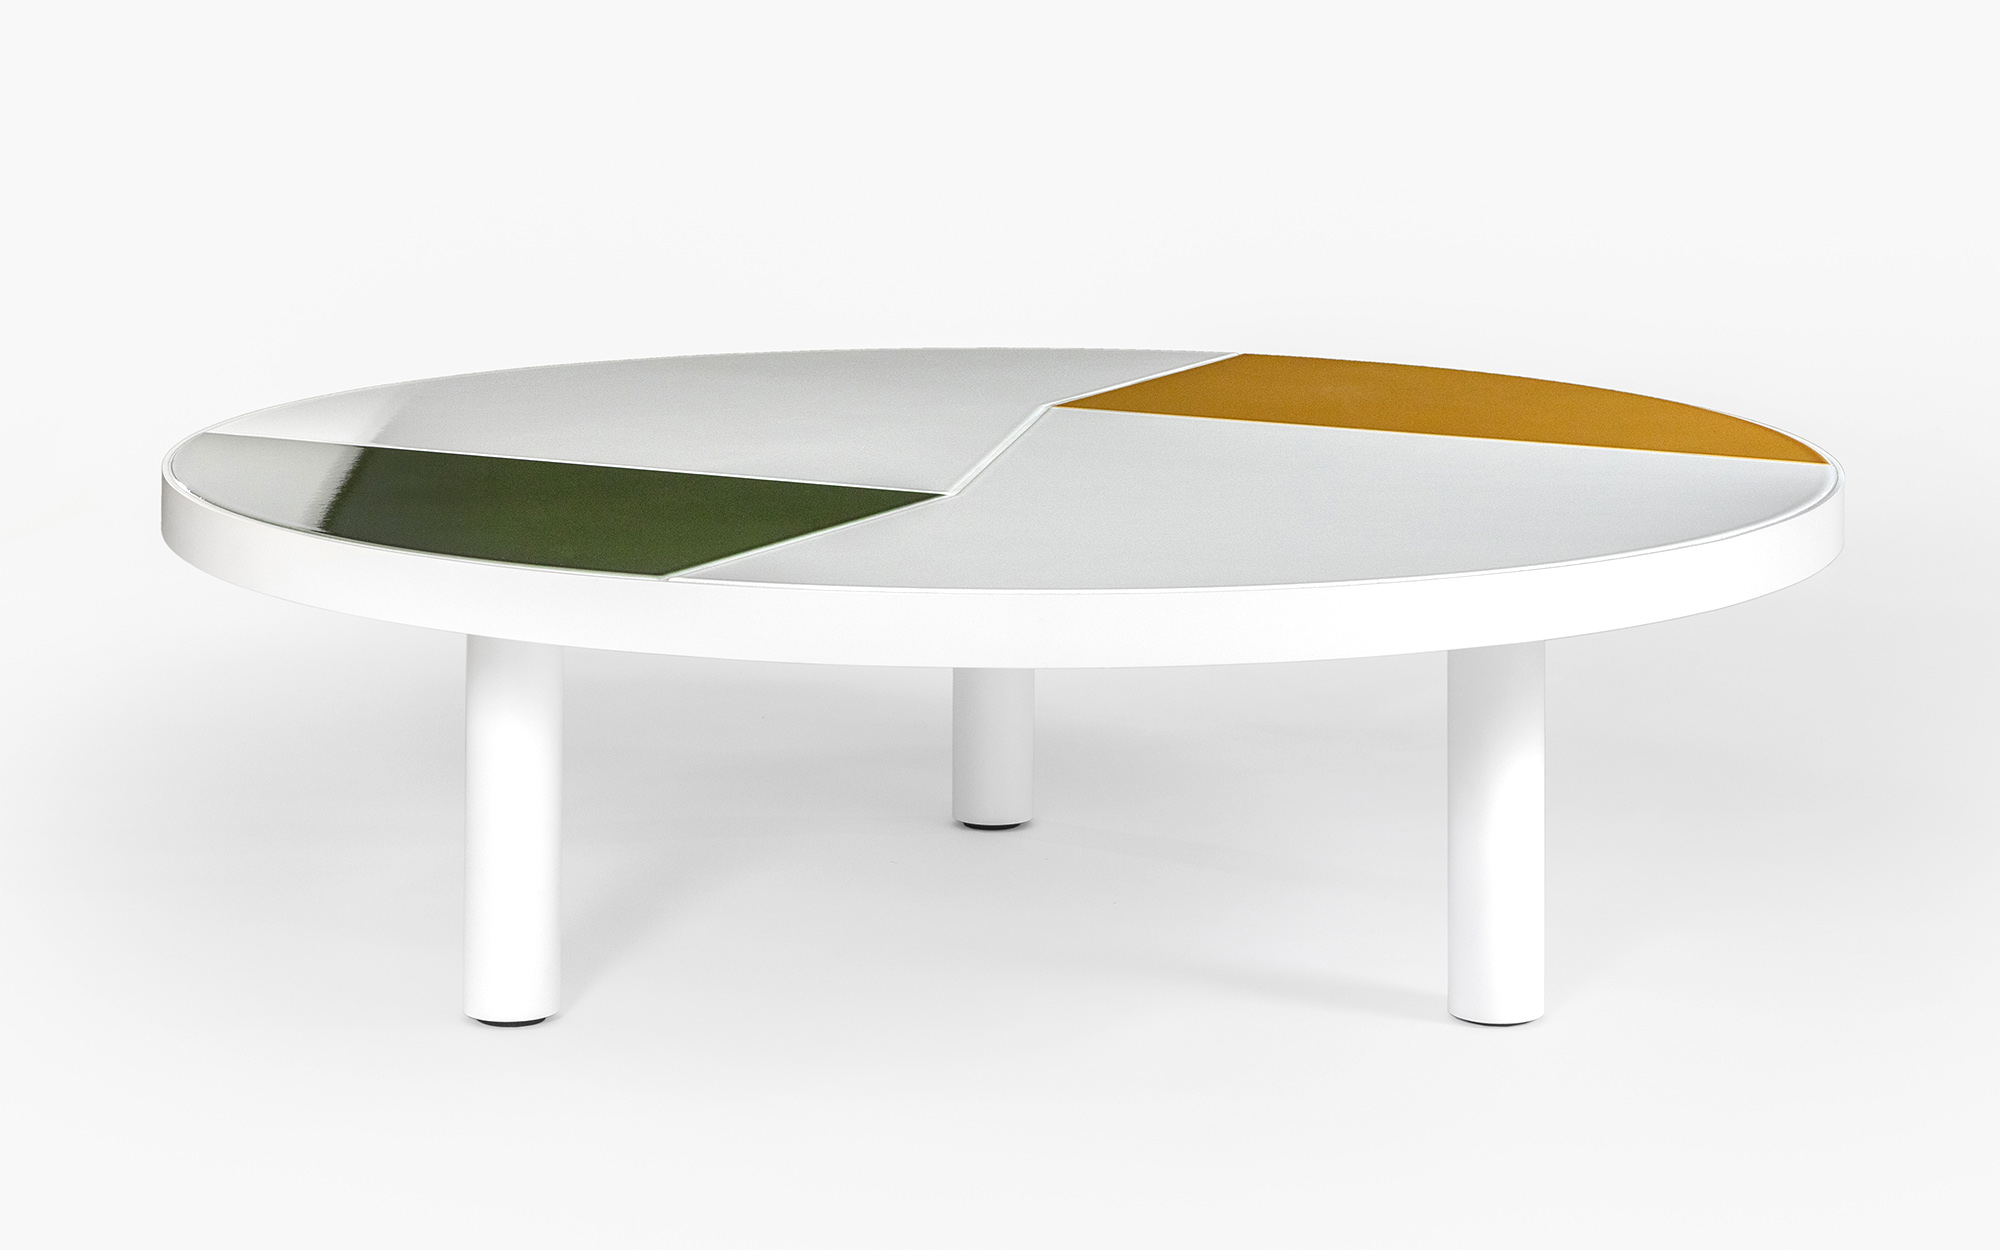 Pierre Charpin Fraction Coffee Table